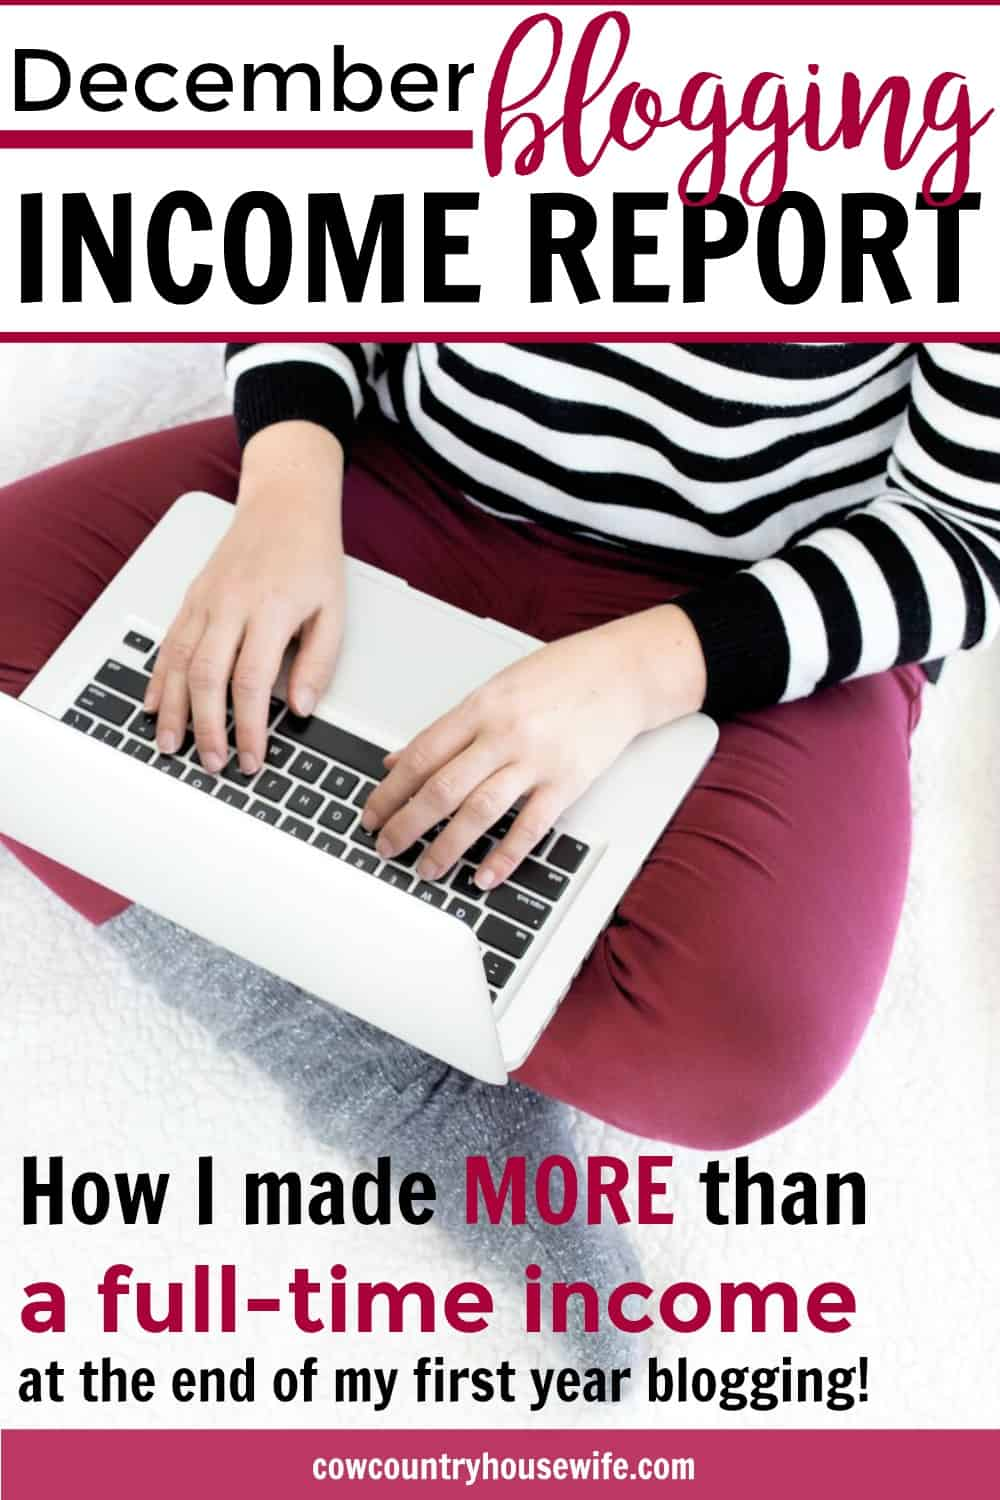 I love her blogging income reports! She shows you everything that she uses step-by-step to make money blogging. I've been following her blog income reports since the beginning and it's amazing how much her blog has grown so quickly! She even made more money than her full-time work husband in her December blogging income report. If you want to make money blogging, you need to read this!